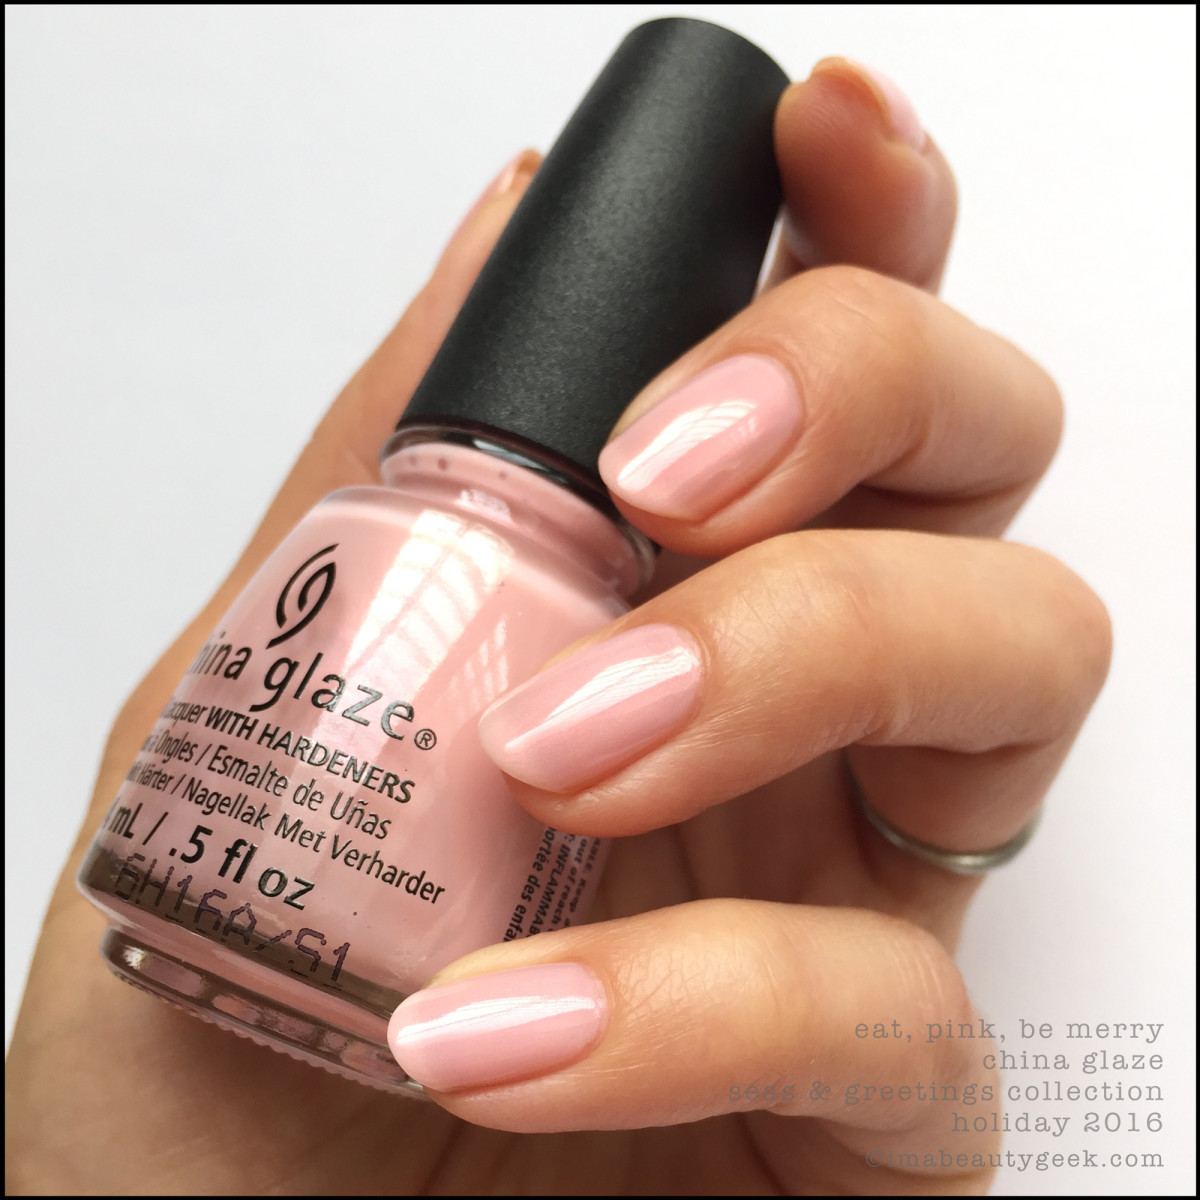 China glaze seas and greetings holiday 2016 collection swatches and china glaze eat pink be merrychina glaze seas greetings holiday 2016 swatches review m4hsunfo